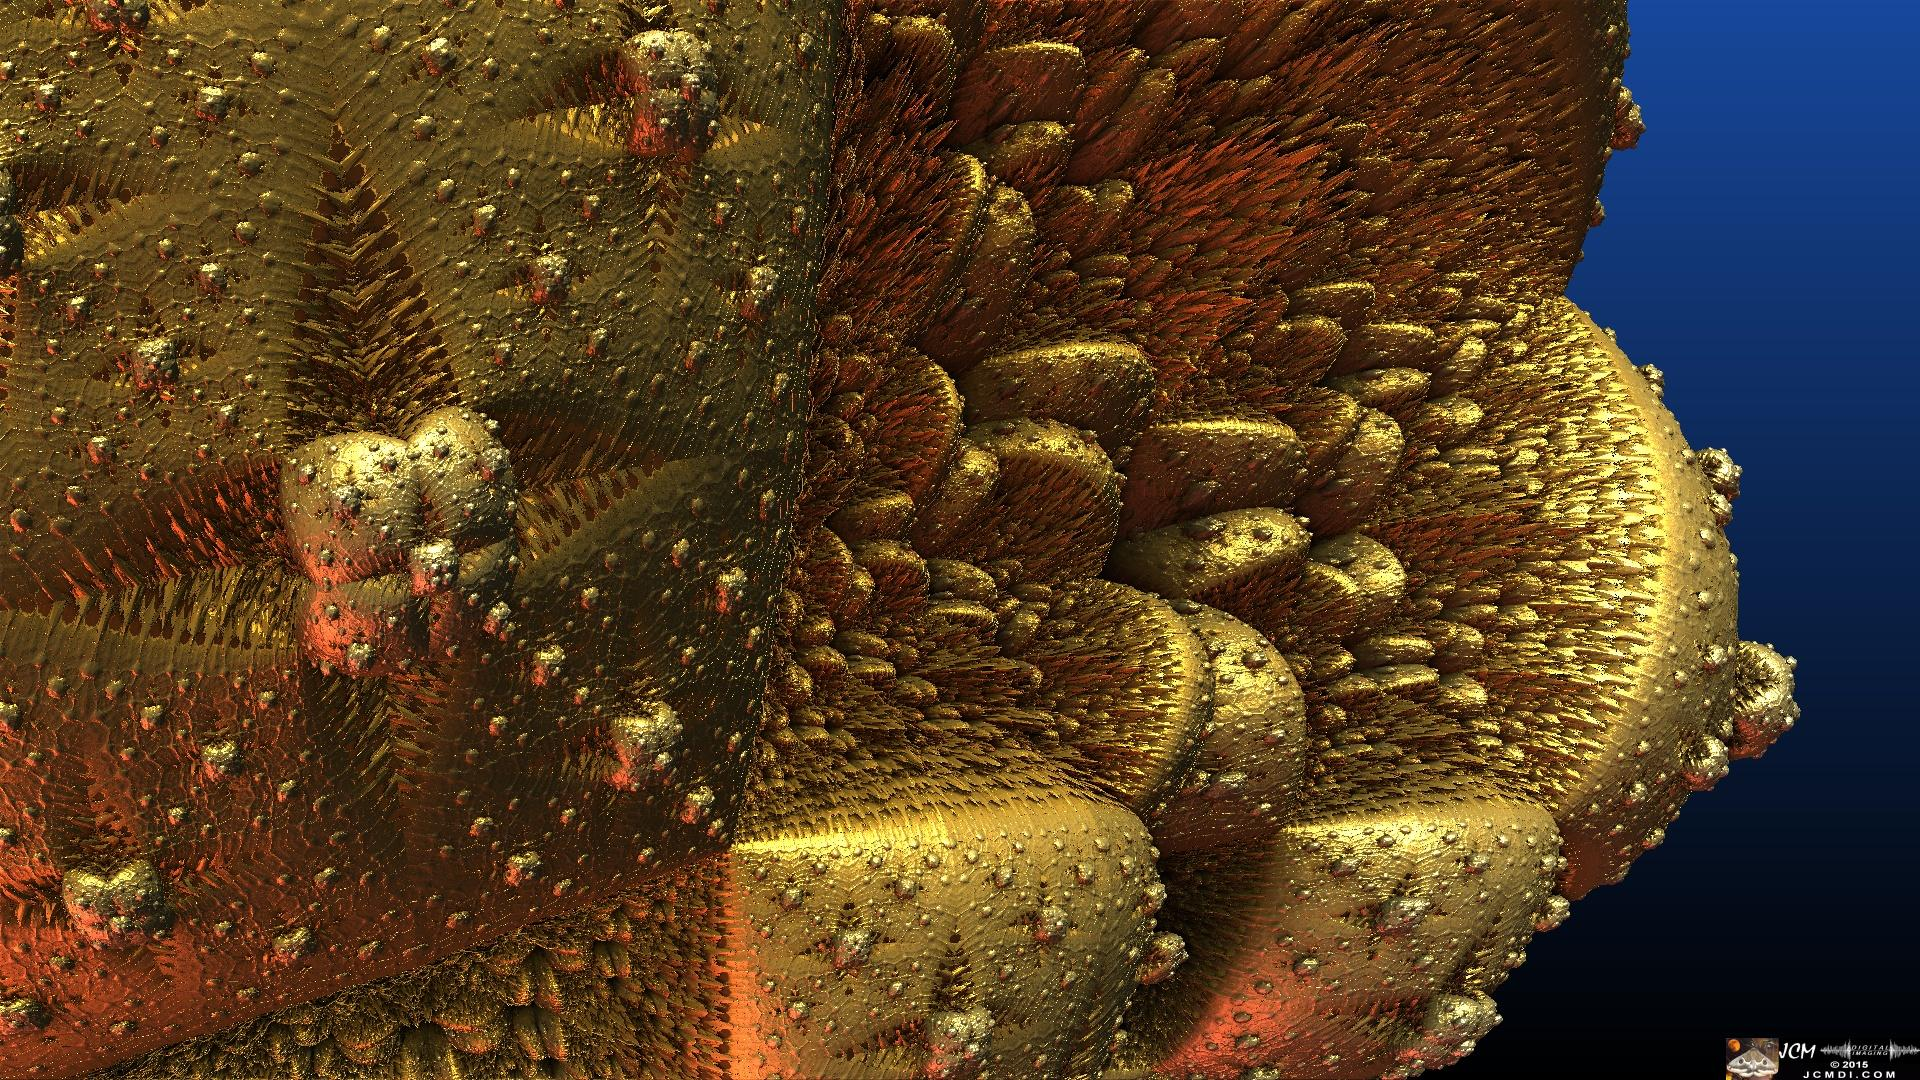 Golden Nugget fractal animation still frame made in Mandelbulb 3D JCMDI.COM